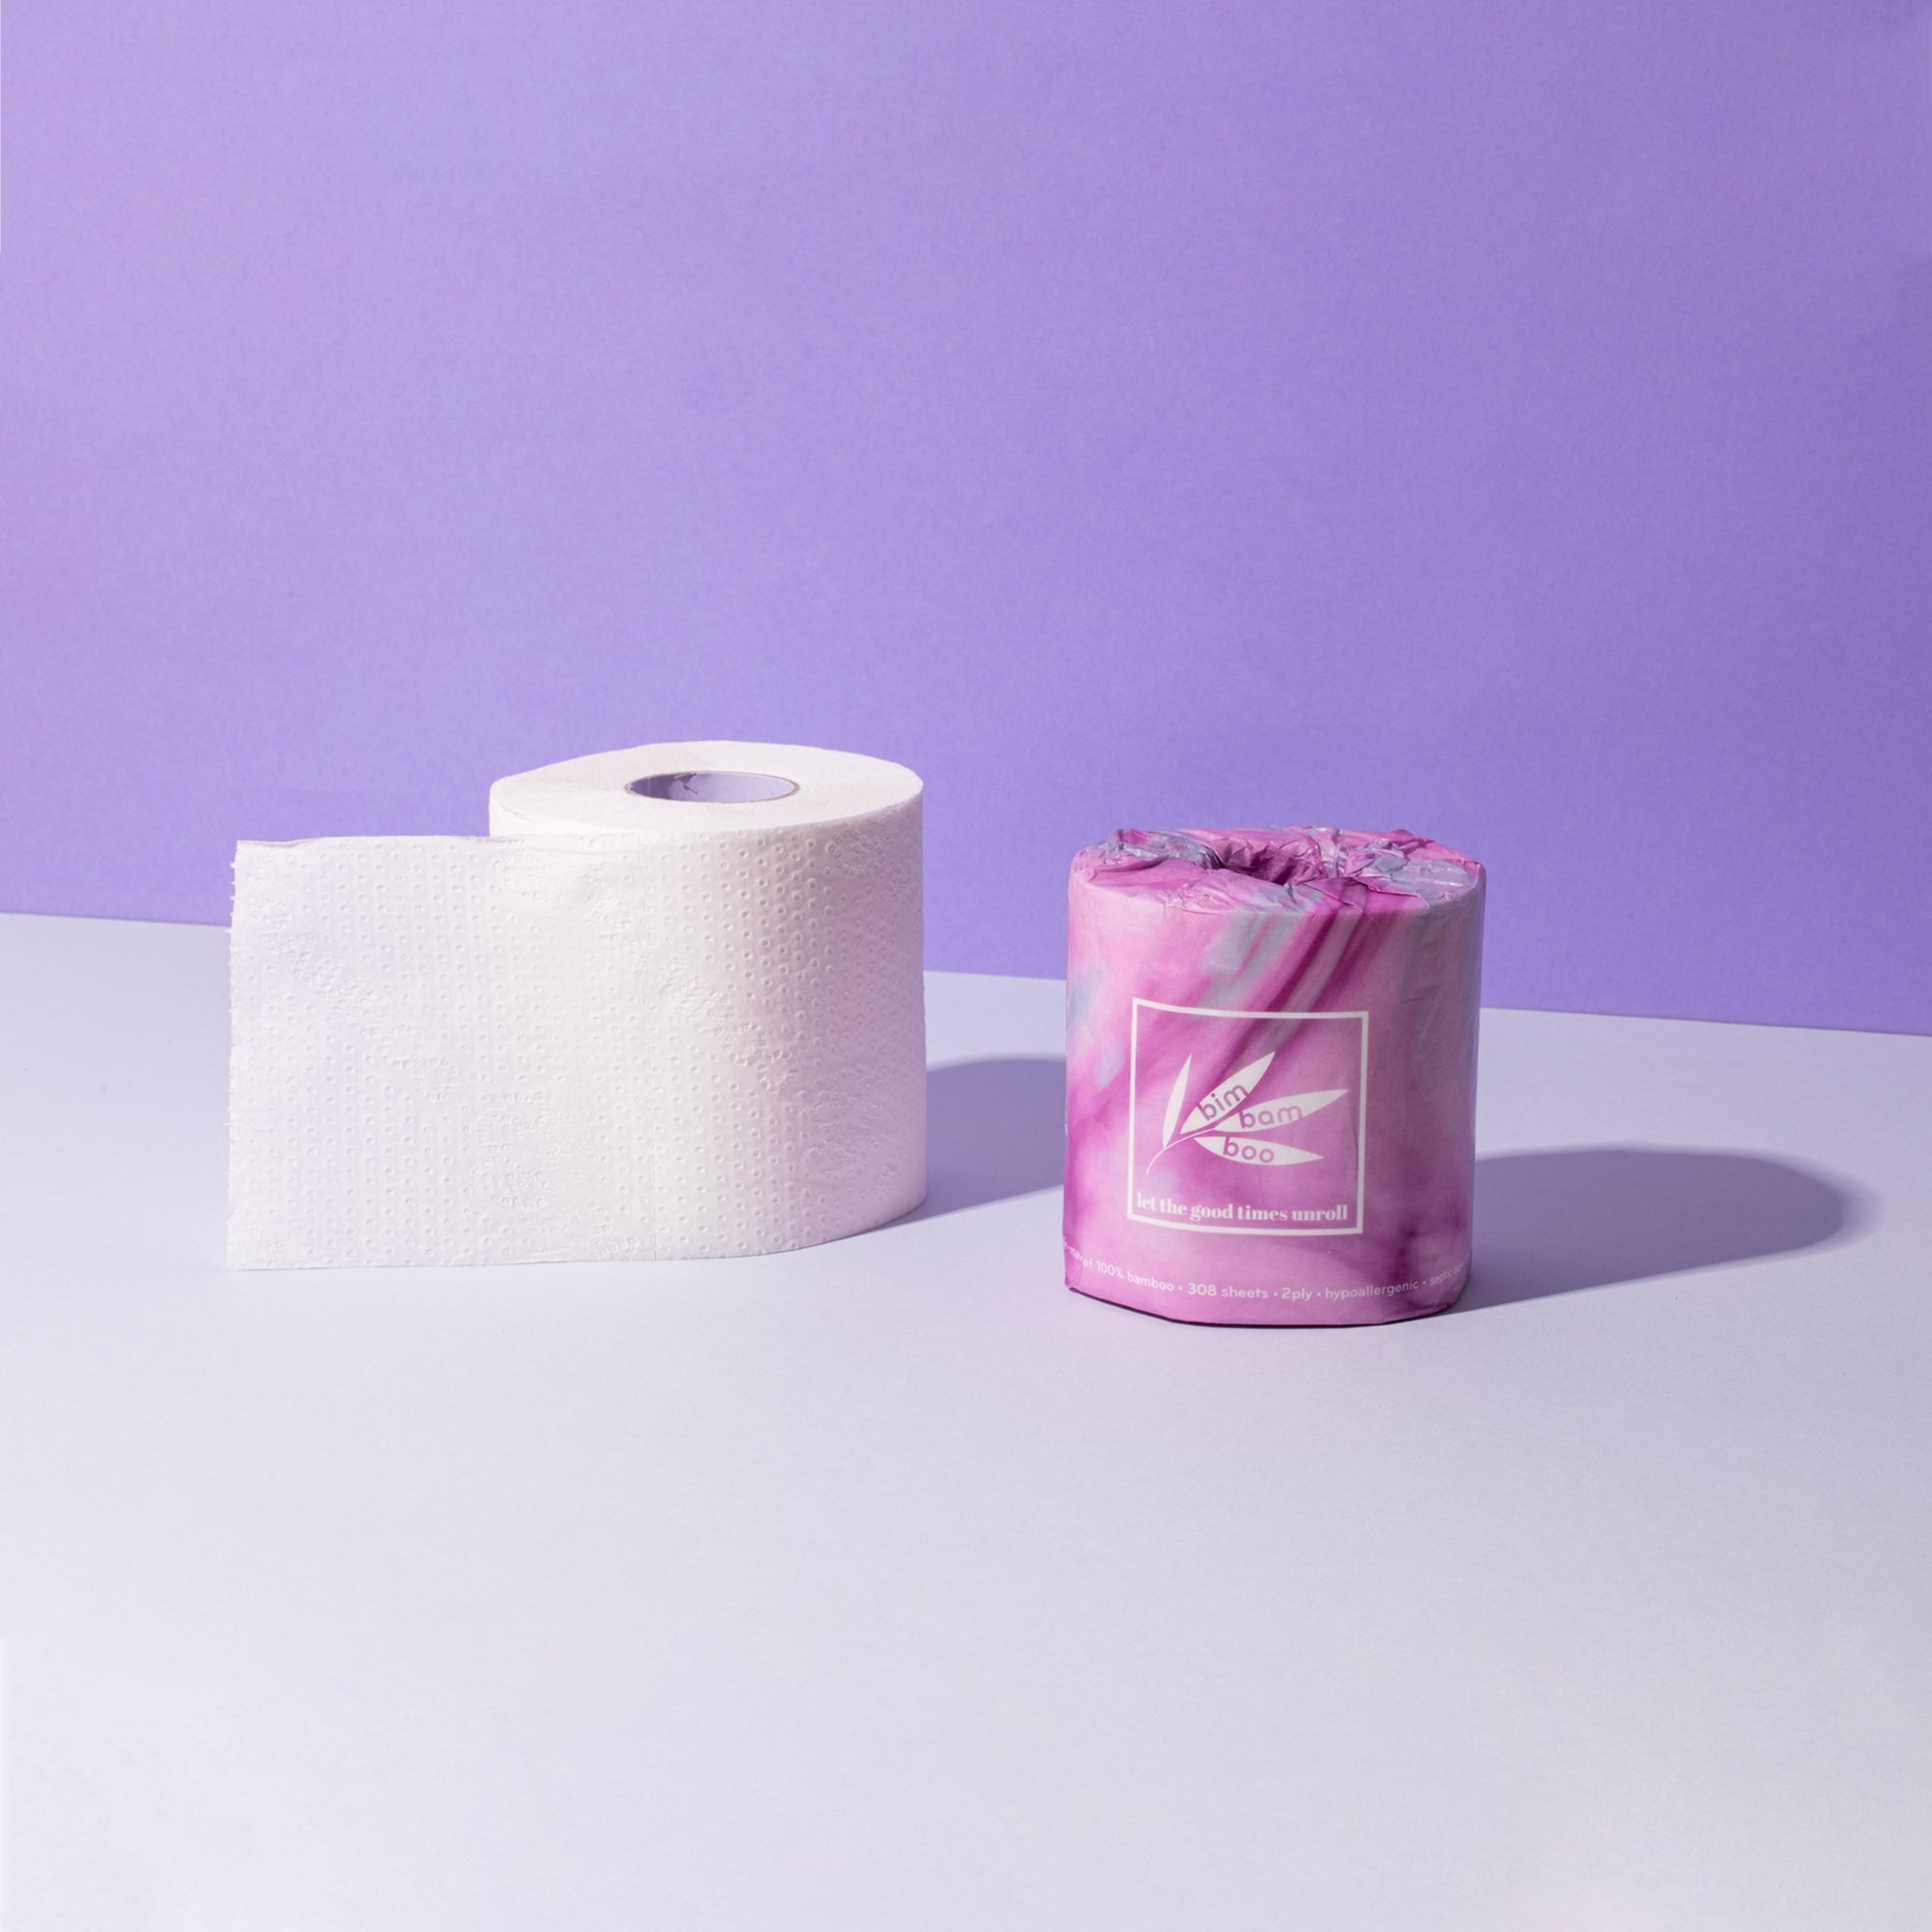 The Perfect Holiday Present: Bim Bam Boo Toilet Paper